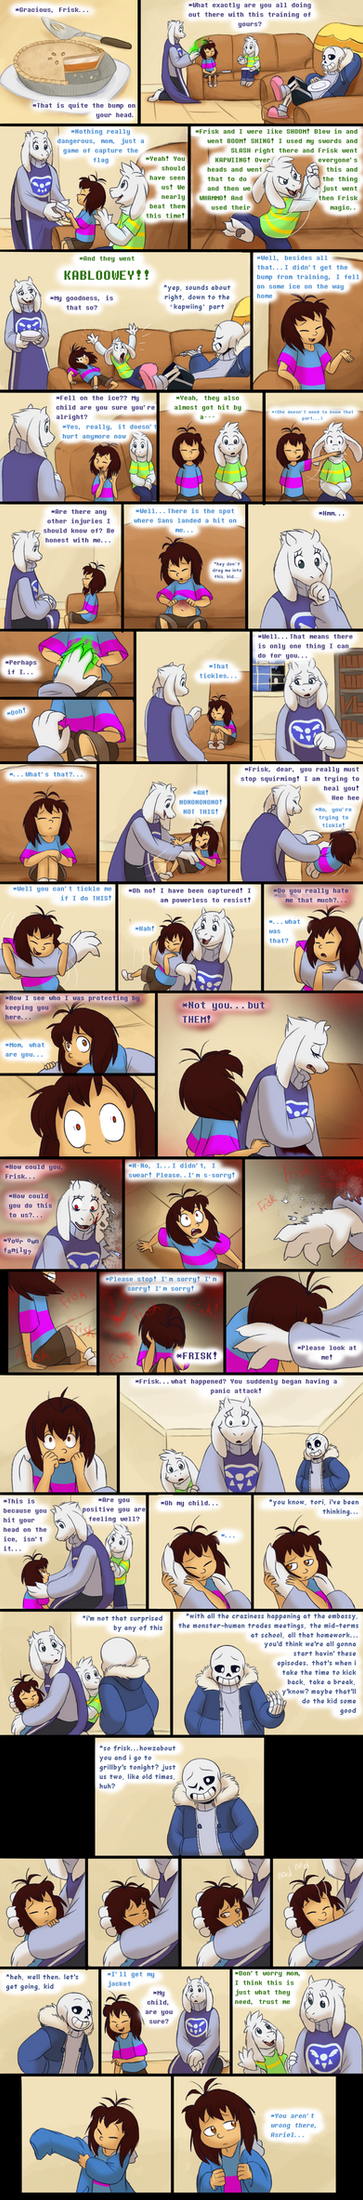 Endertale - Page 10 by TC-96